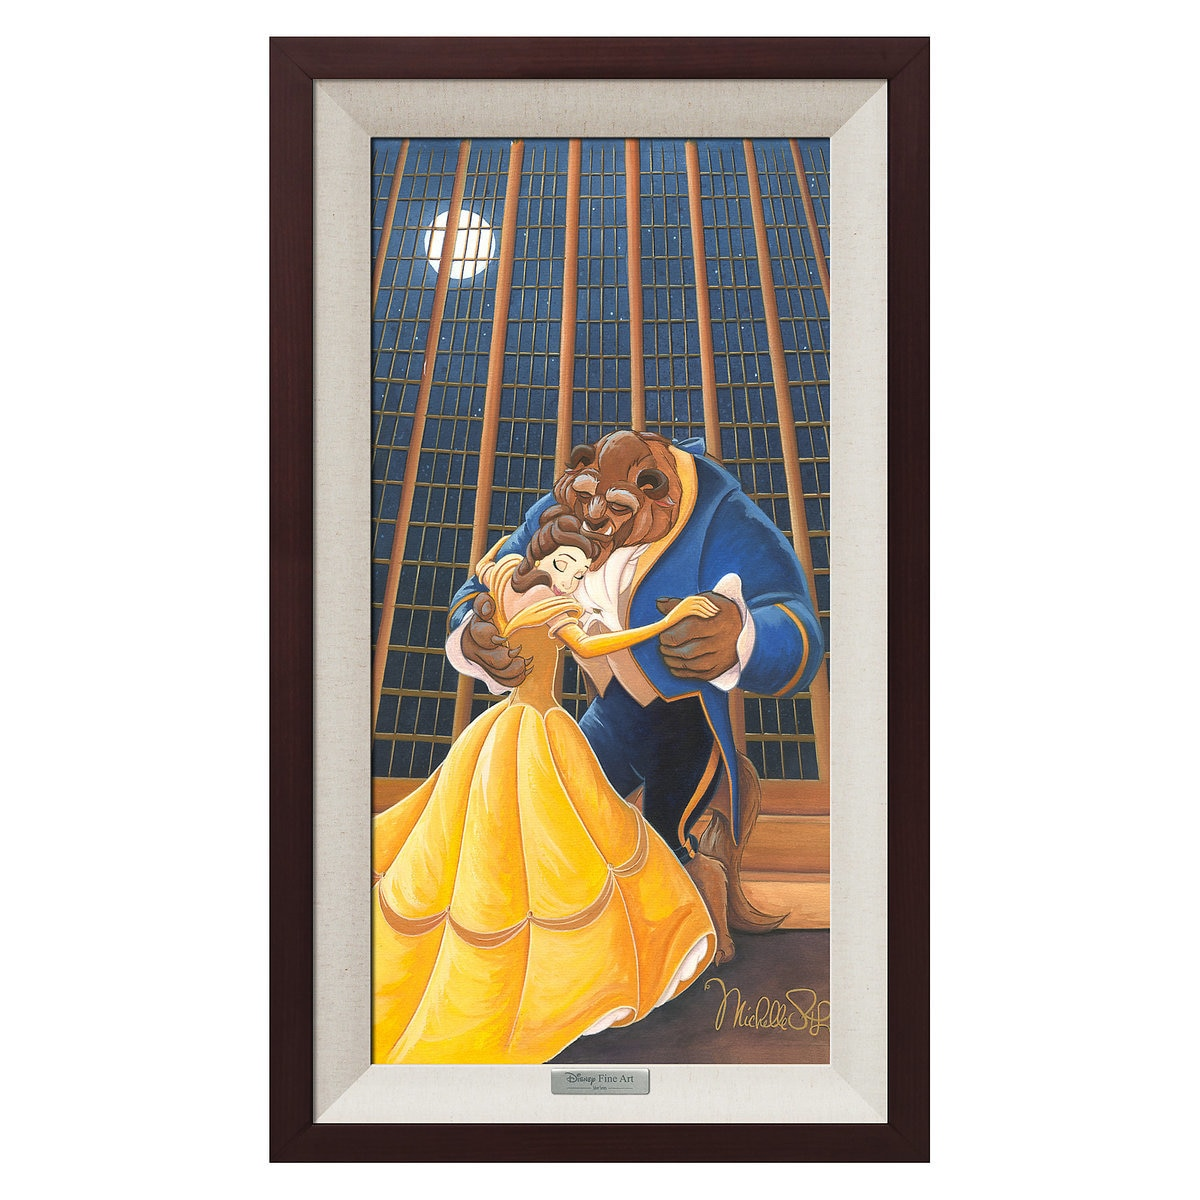 Beauty and the beast a beautiful dance giclée on canvas by michelle st laurent